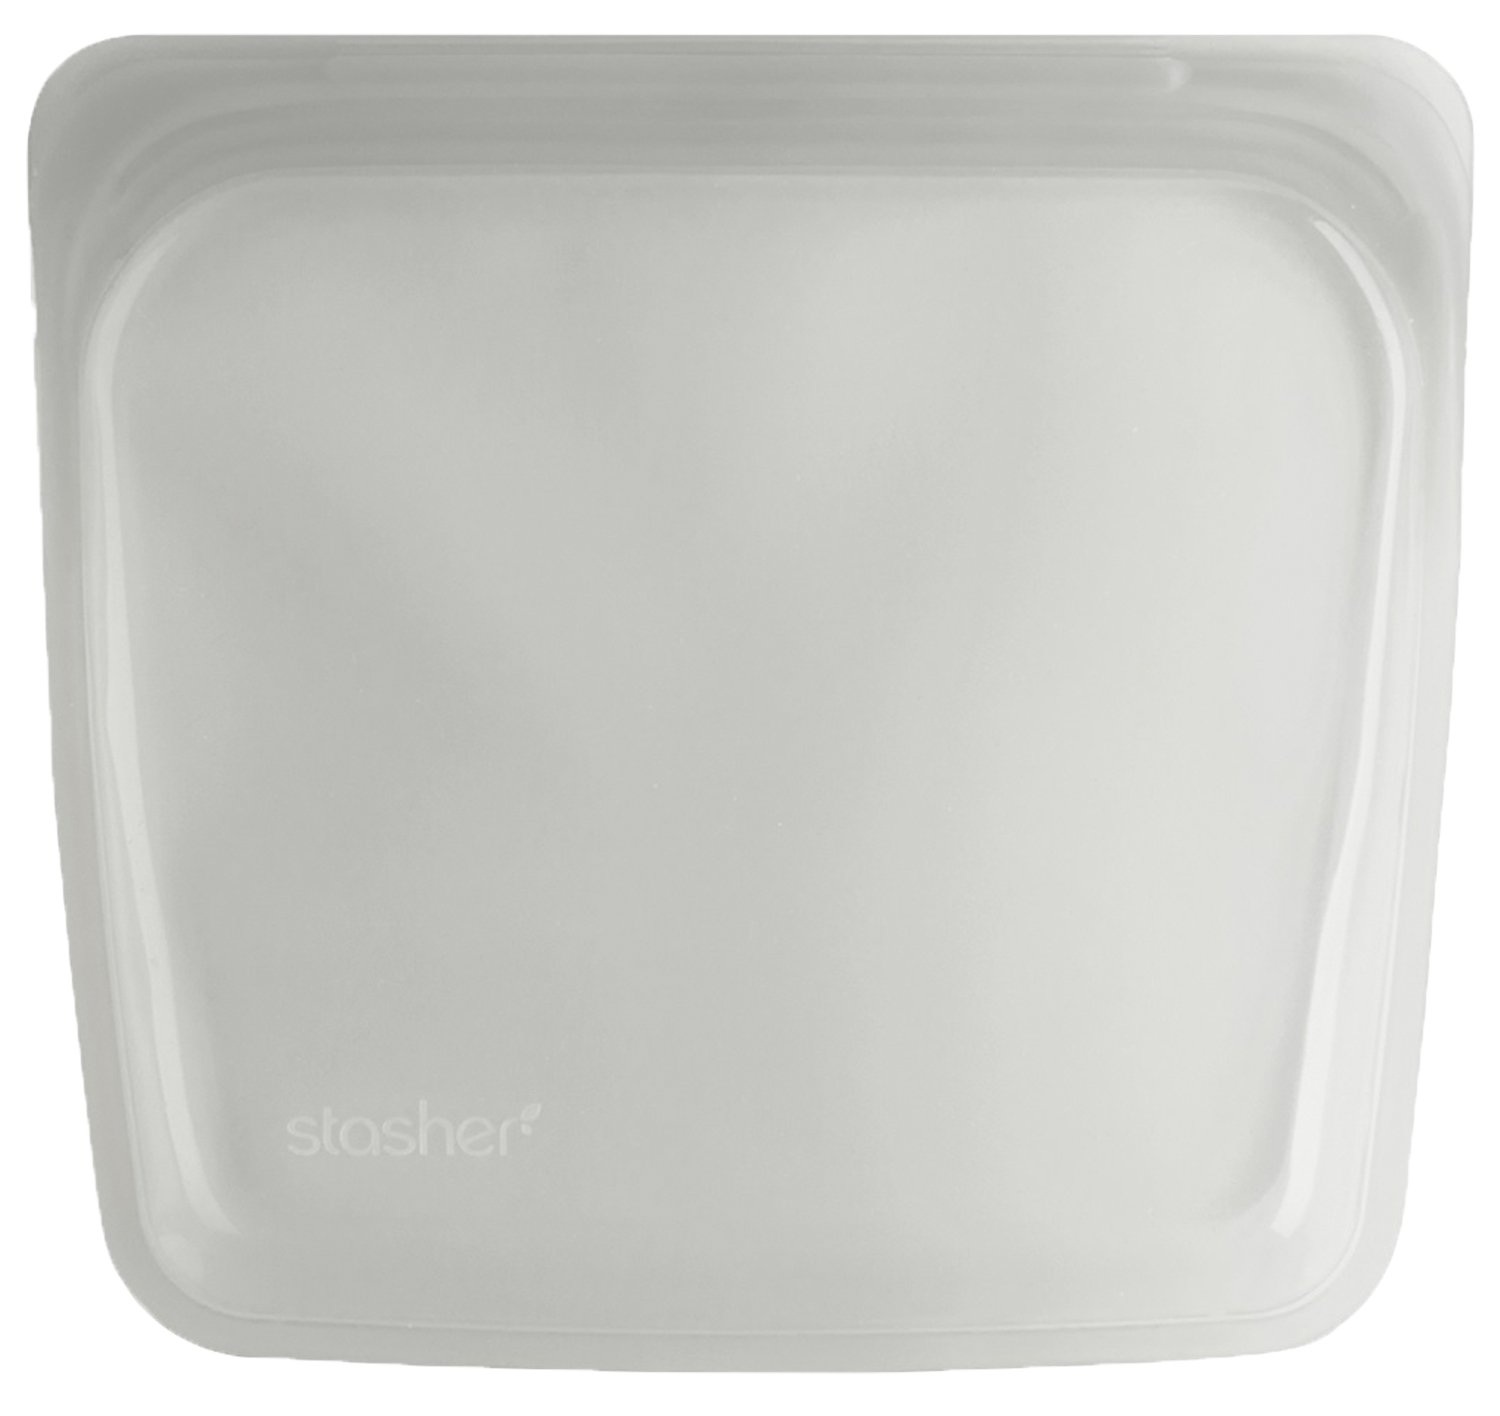 Stasher Reusable Silicone Food Bag, Sandwich Bag, Sous vide Bag, Storage Bag, Clear by Stasher